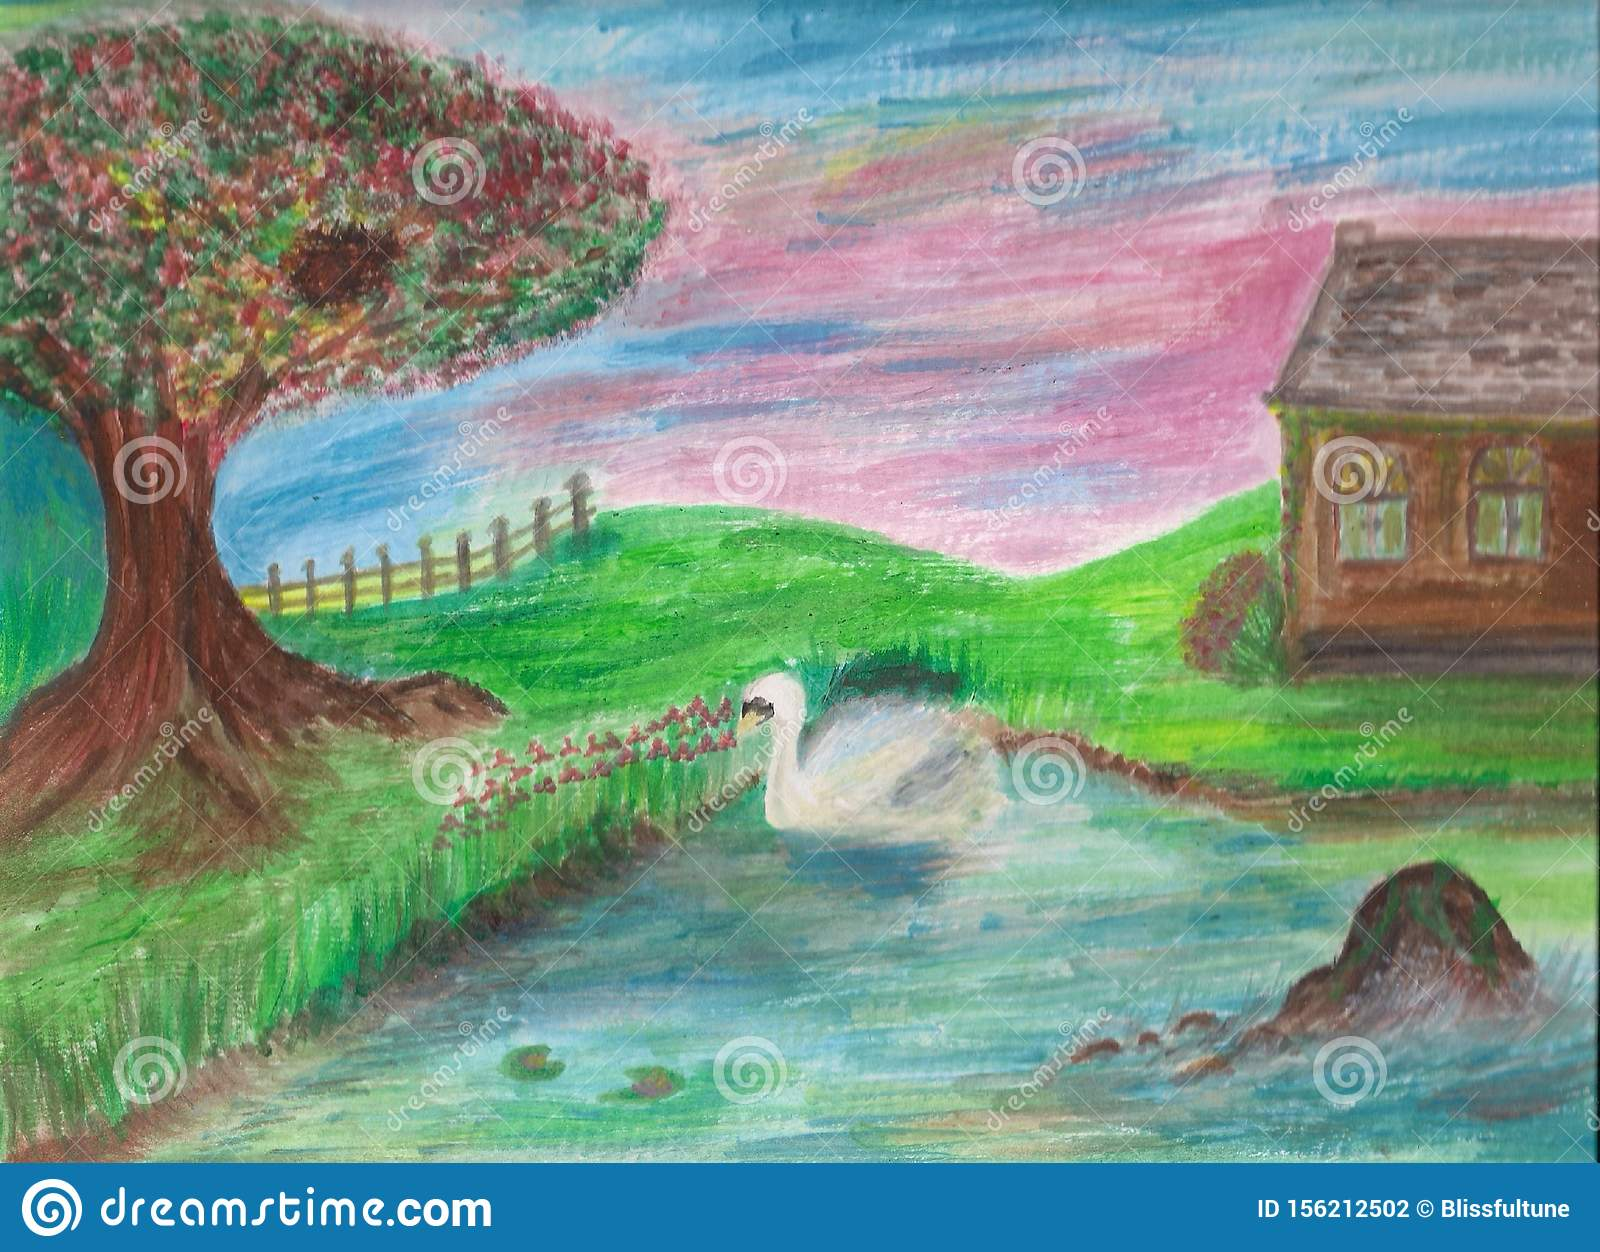 Bright Attractive Colorful Nature Art Illustration With A Swan In A Pond Stock Illustration Illustration Of Floral Colorful 156212502